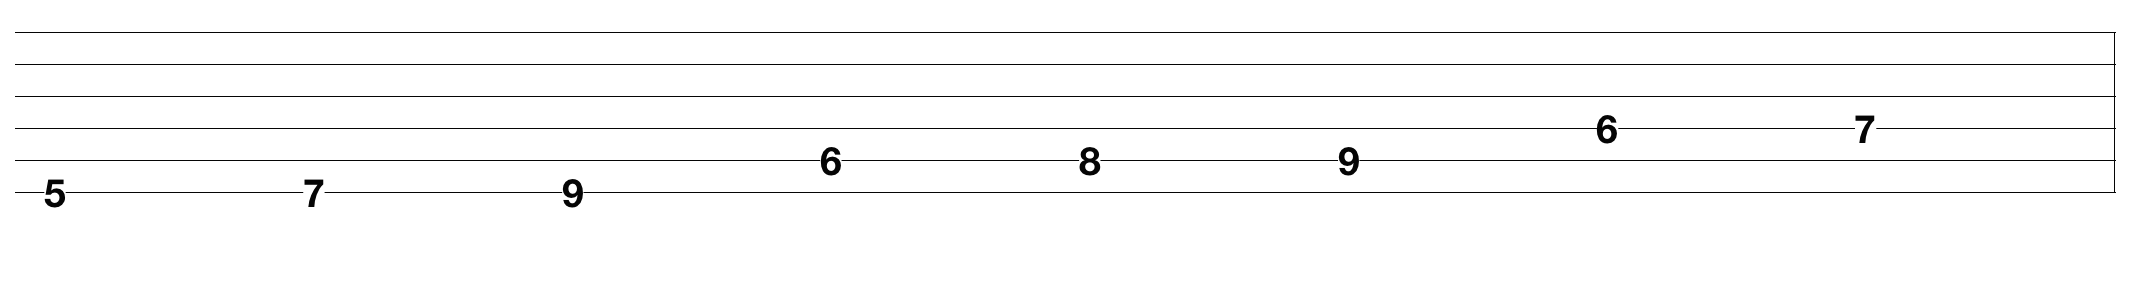 melodic-guitar-scales_3.png